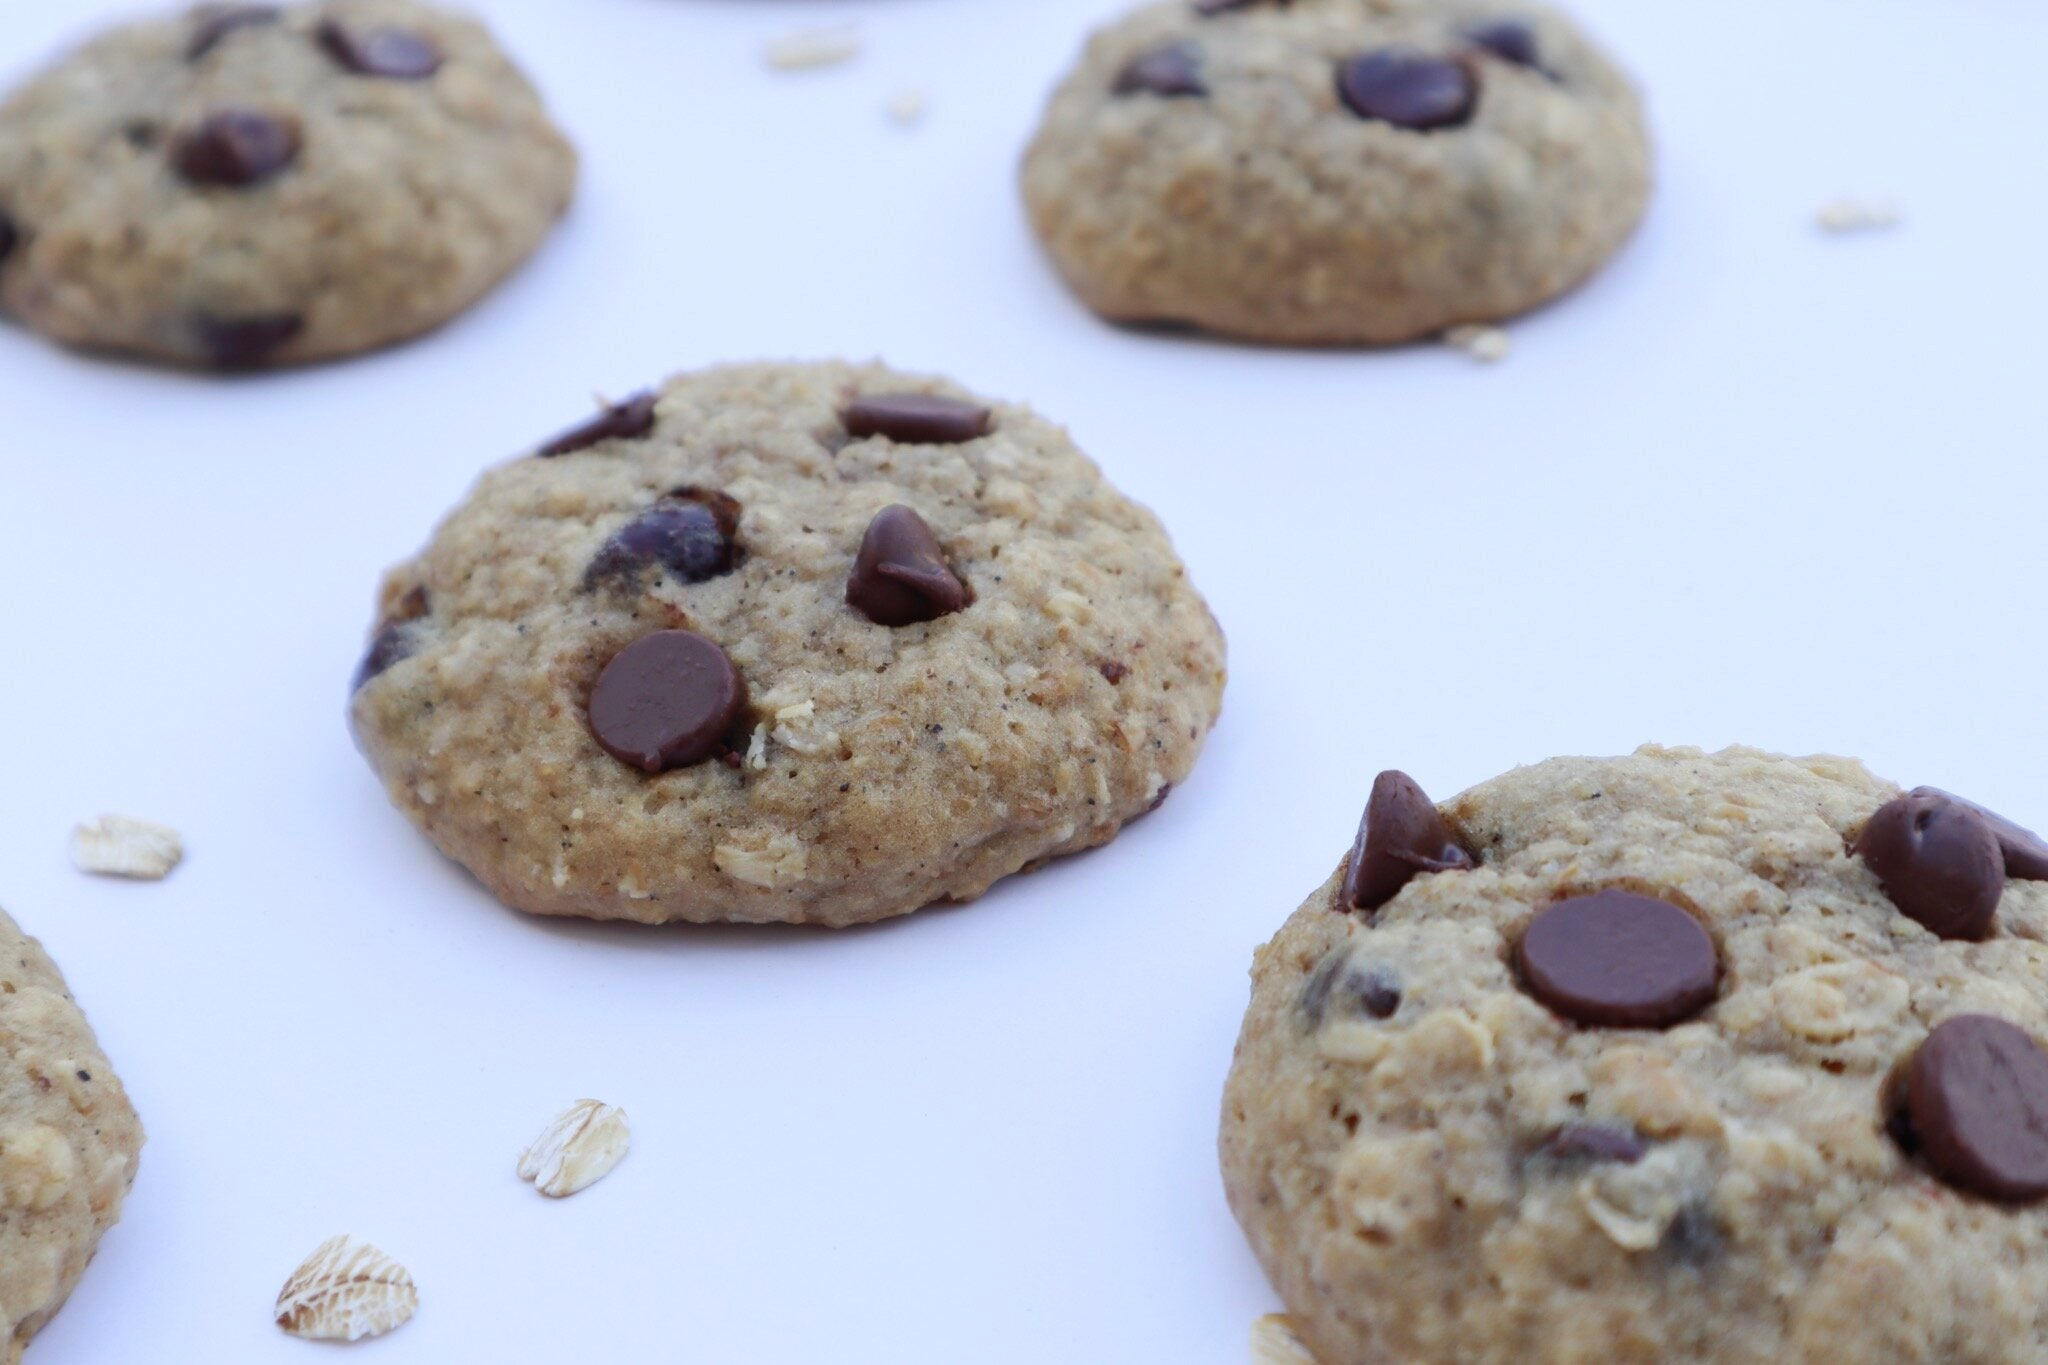 Oatmeal Peanut Butter Chocolate Chip Mix